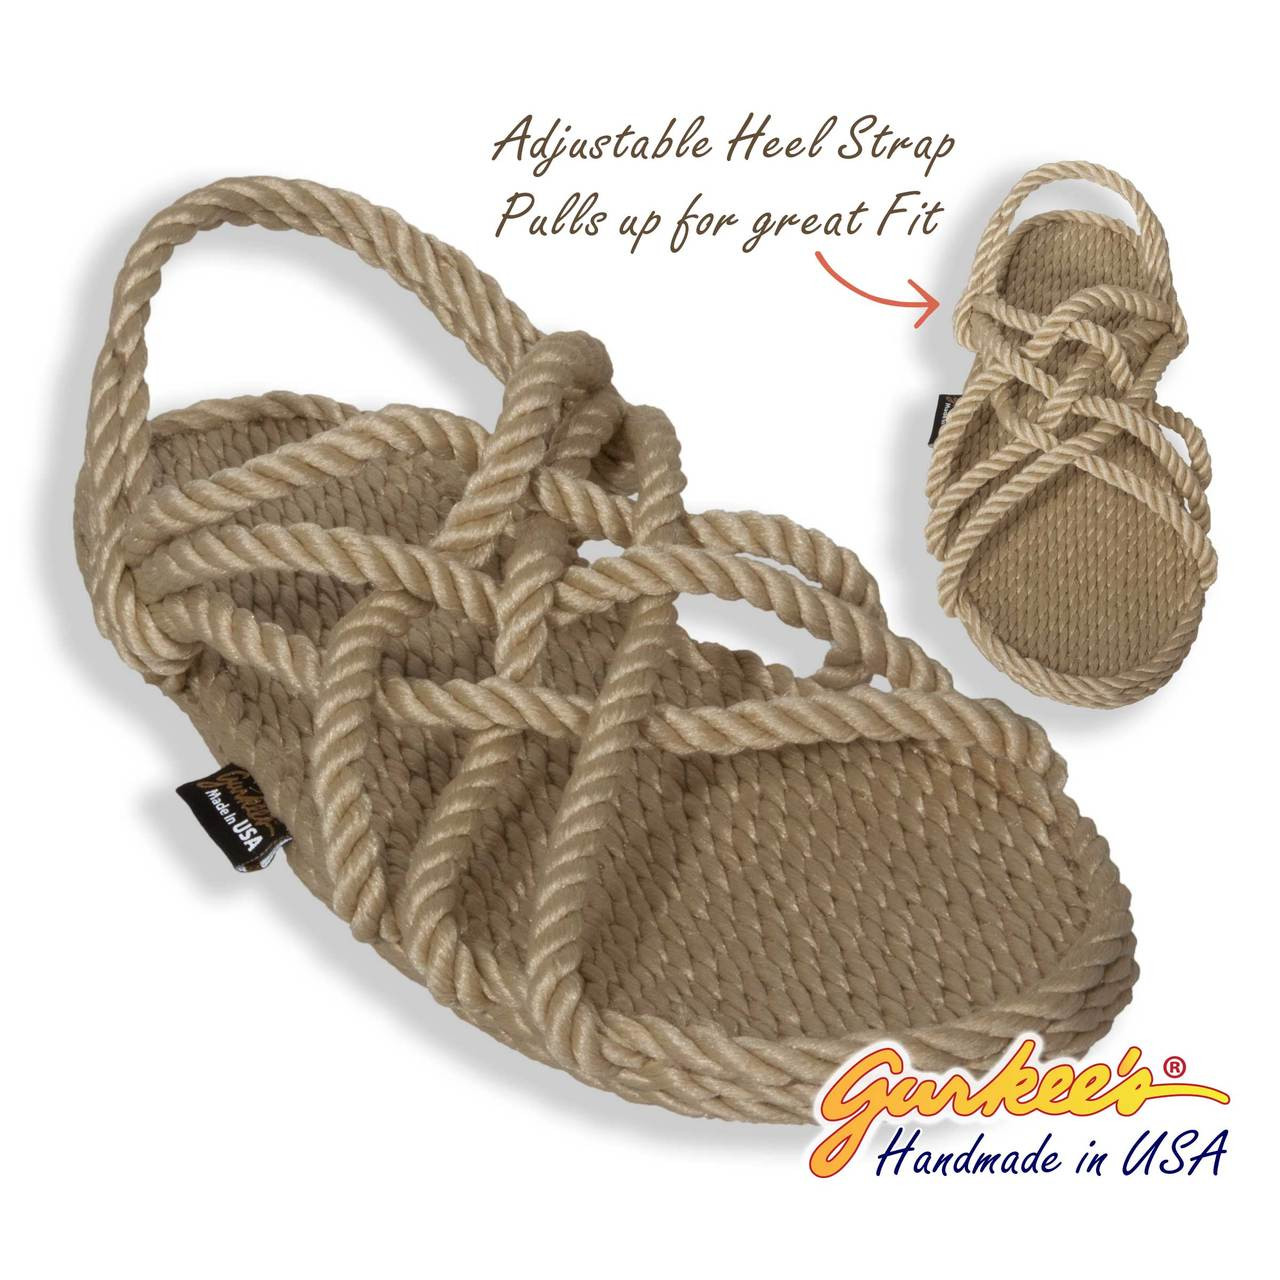 57bb44ecea2e55 Classic neptune tan rope sandals gurkees jpg 1280x1280 Rope sandals